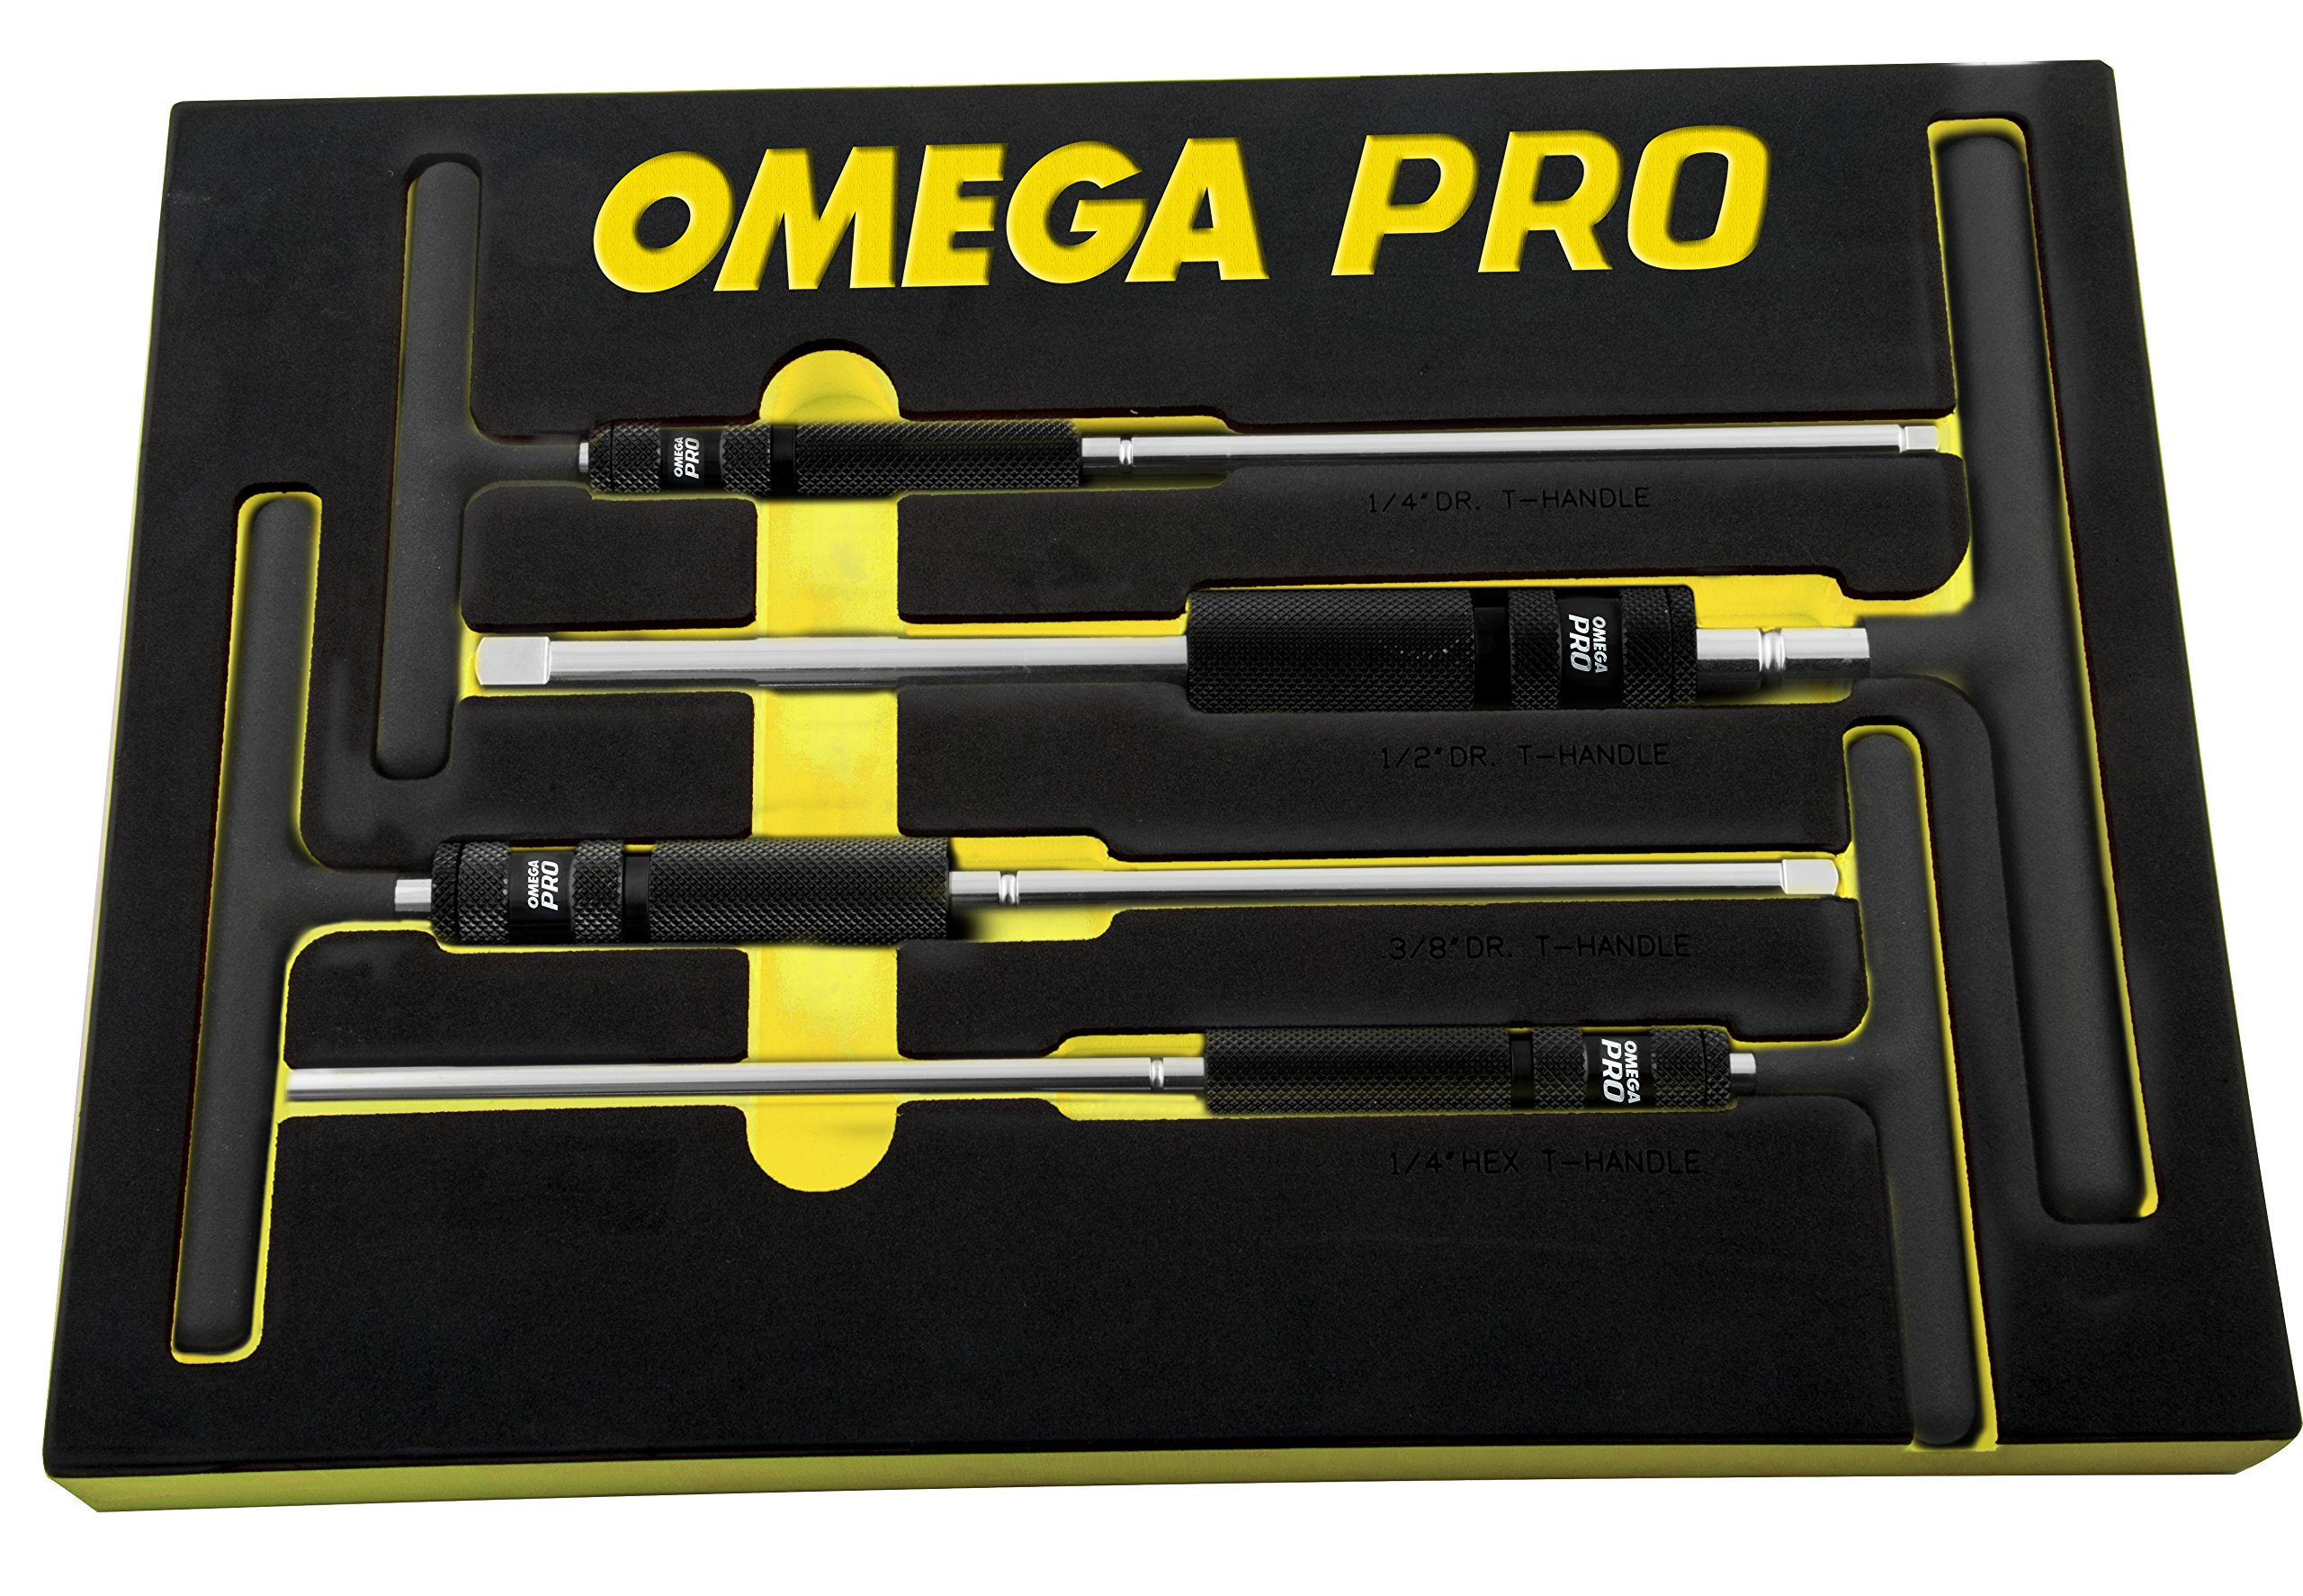 Omega Pro 83024 Pro 4 Piece Adjustable T-Handle Speed Wrench Set, 12.6'' Height, 8.7'' Width, 17.3'' Length